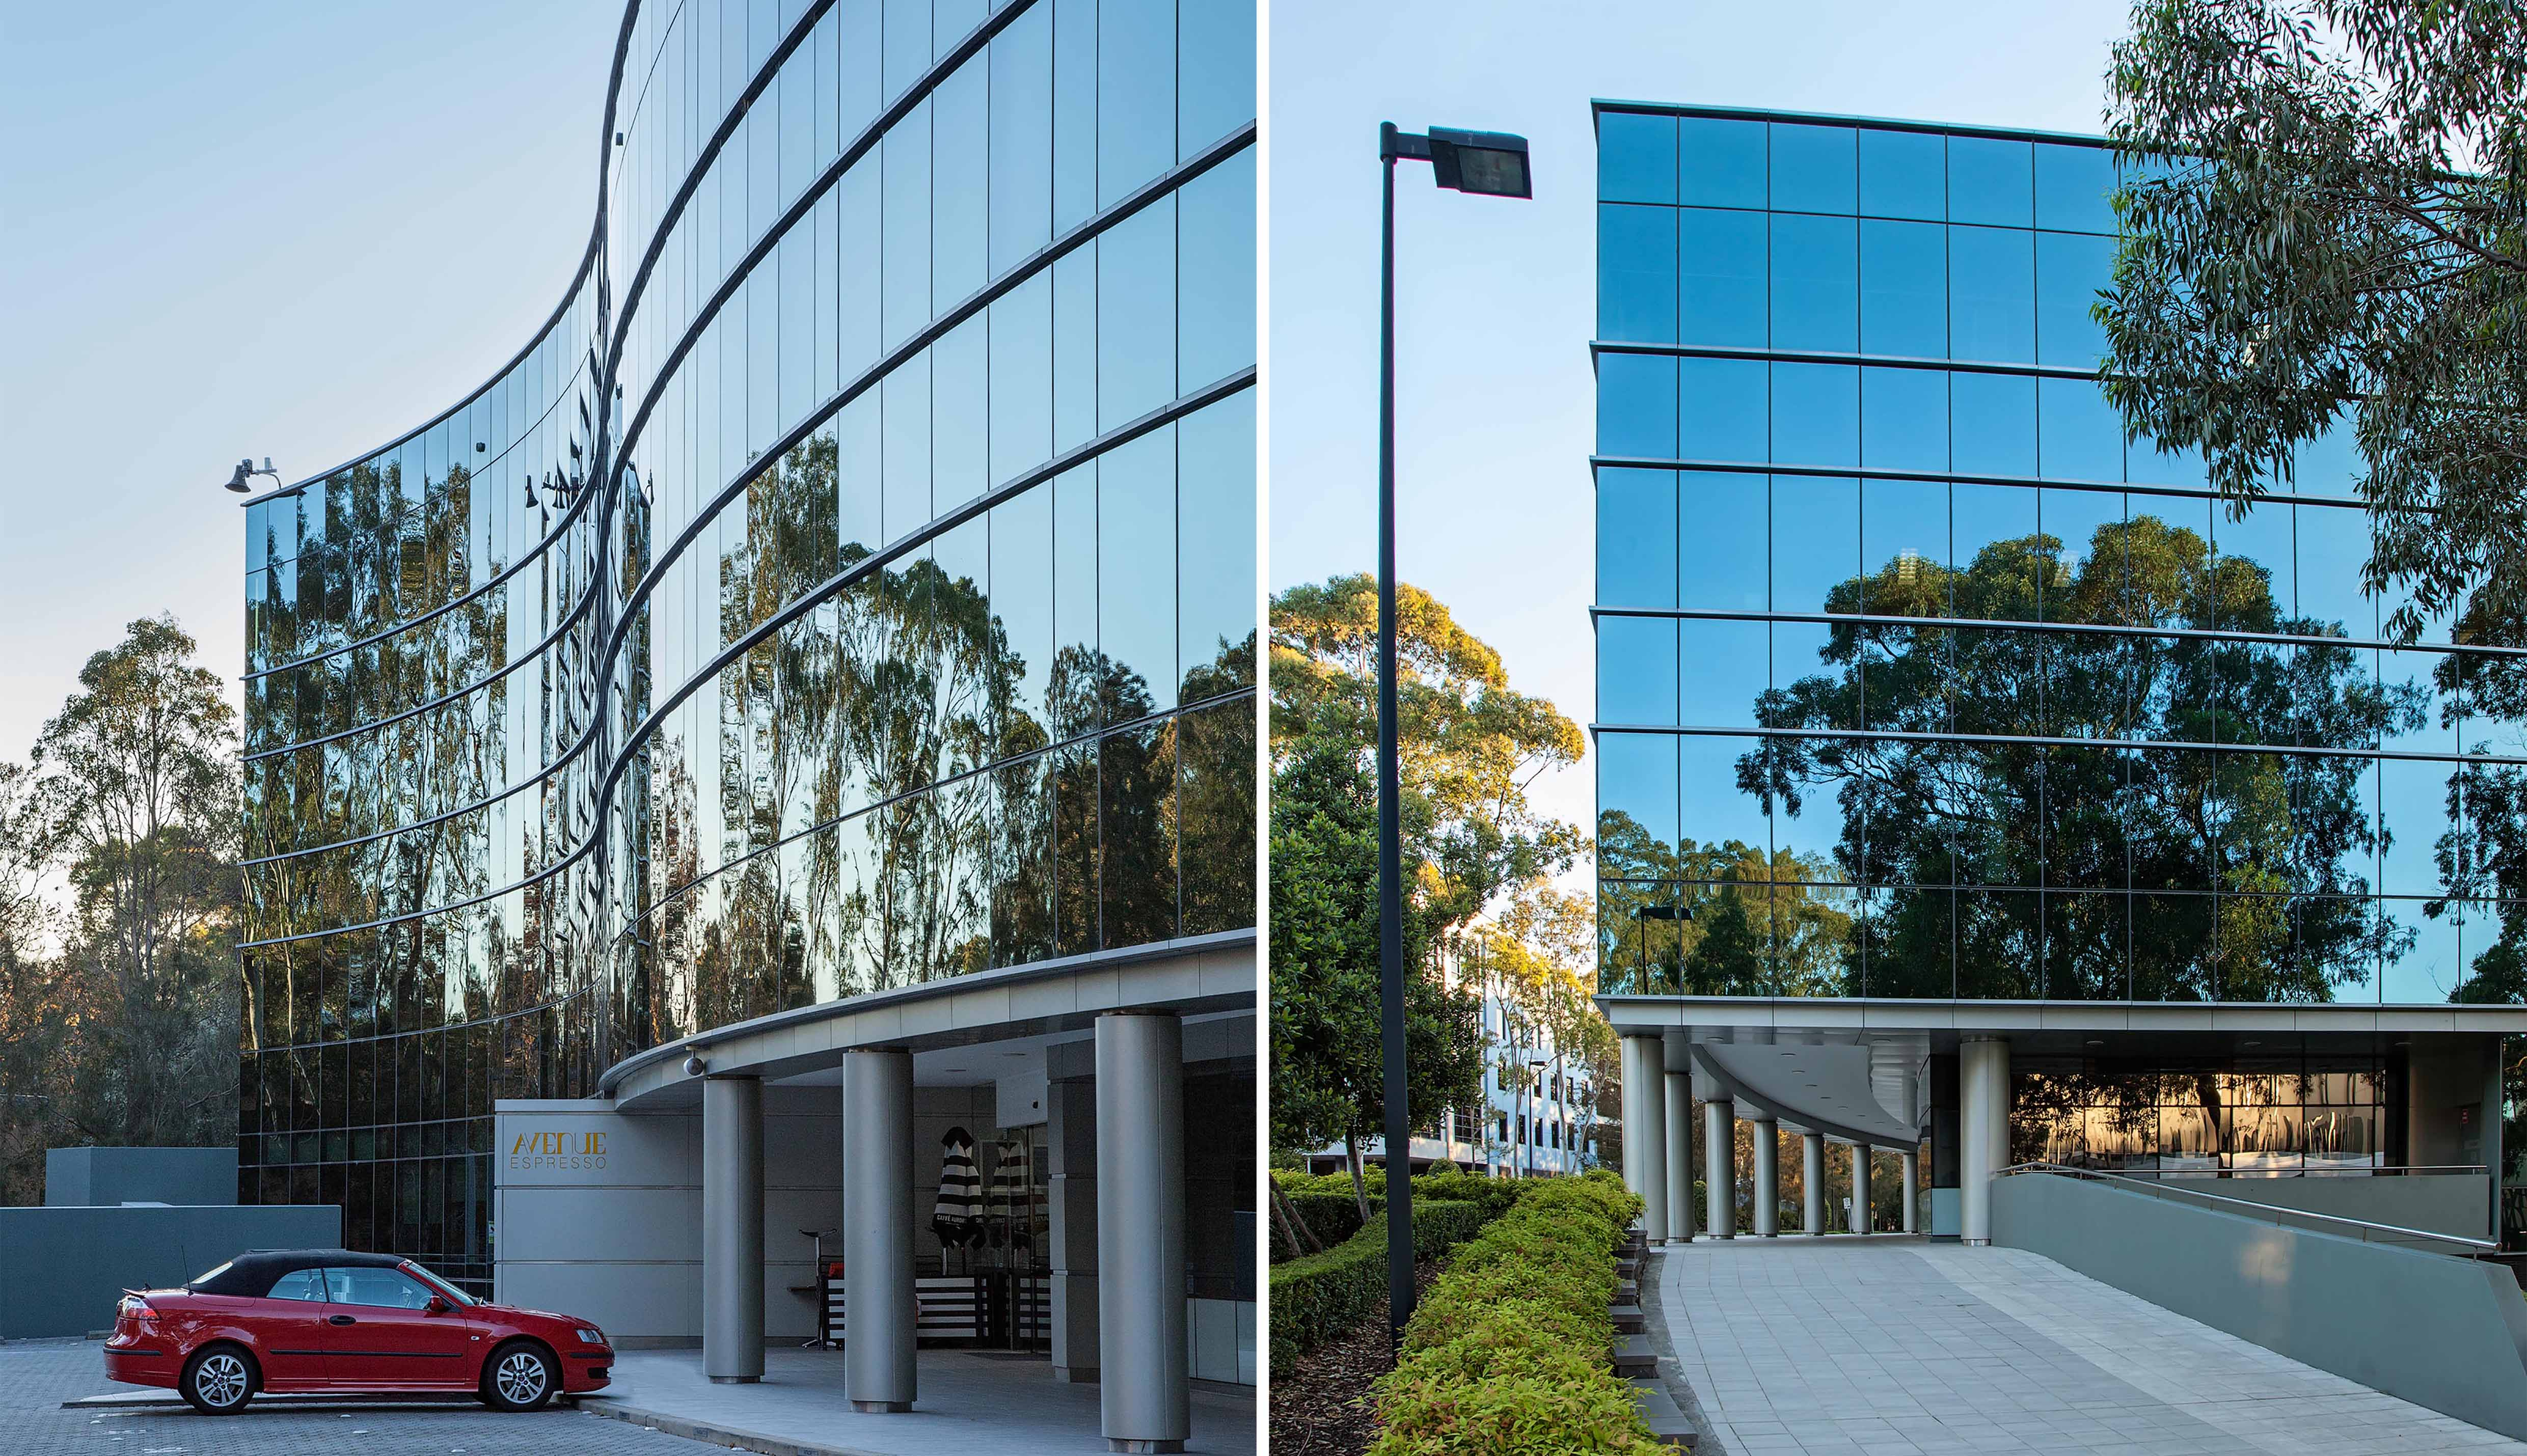 Everglades commercial office building enternace and parking North Ryde